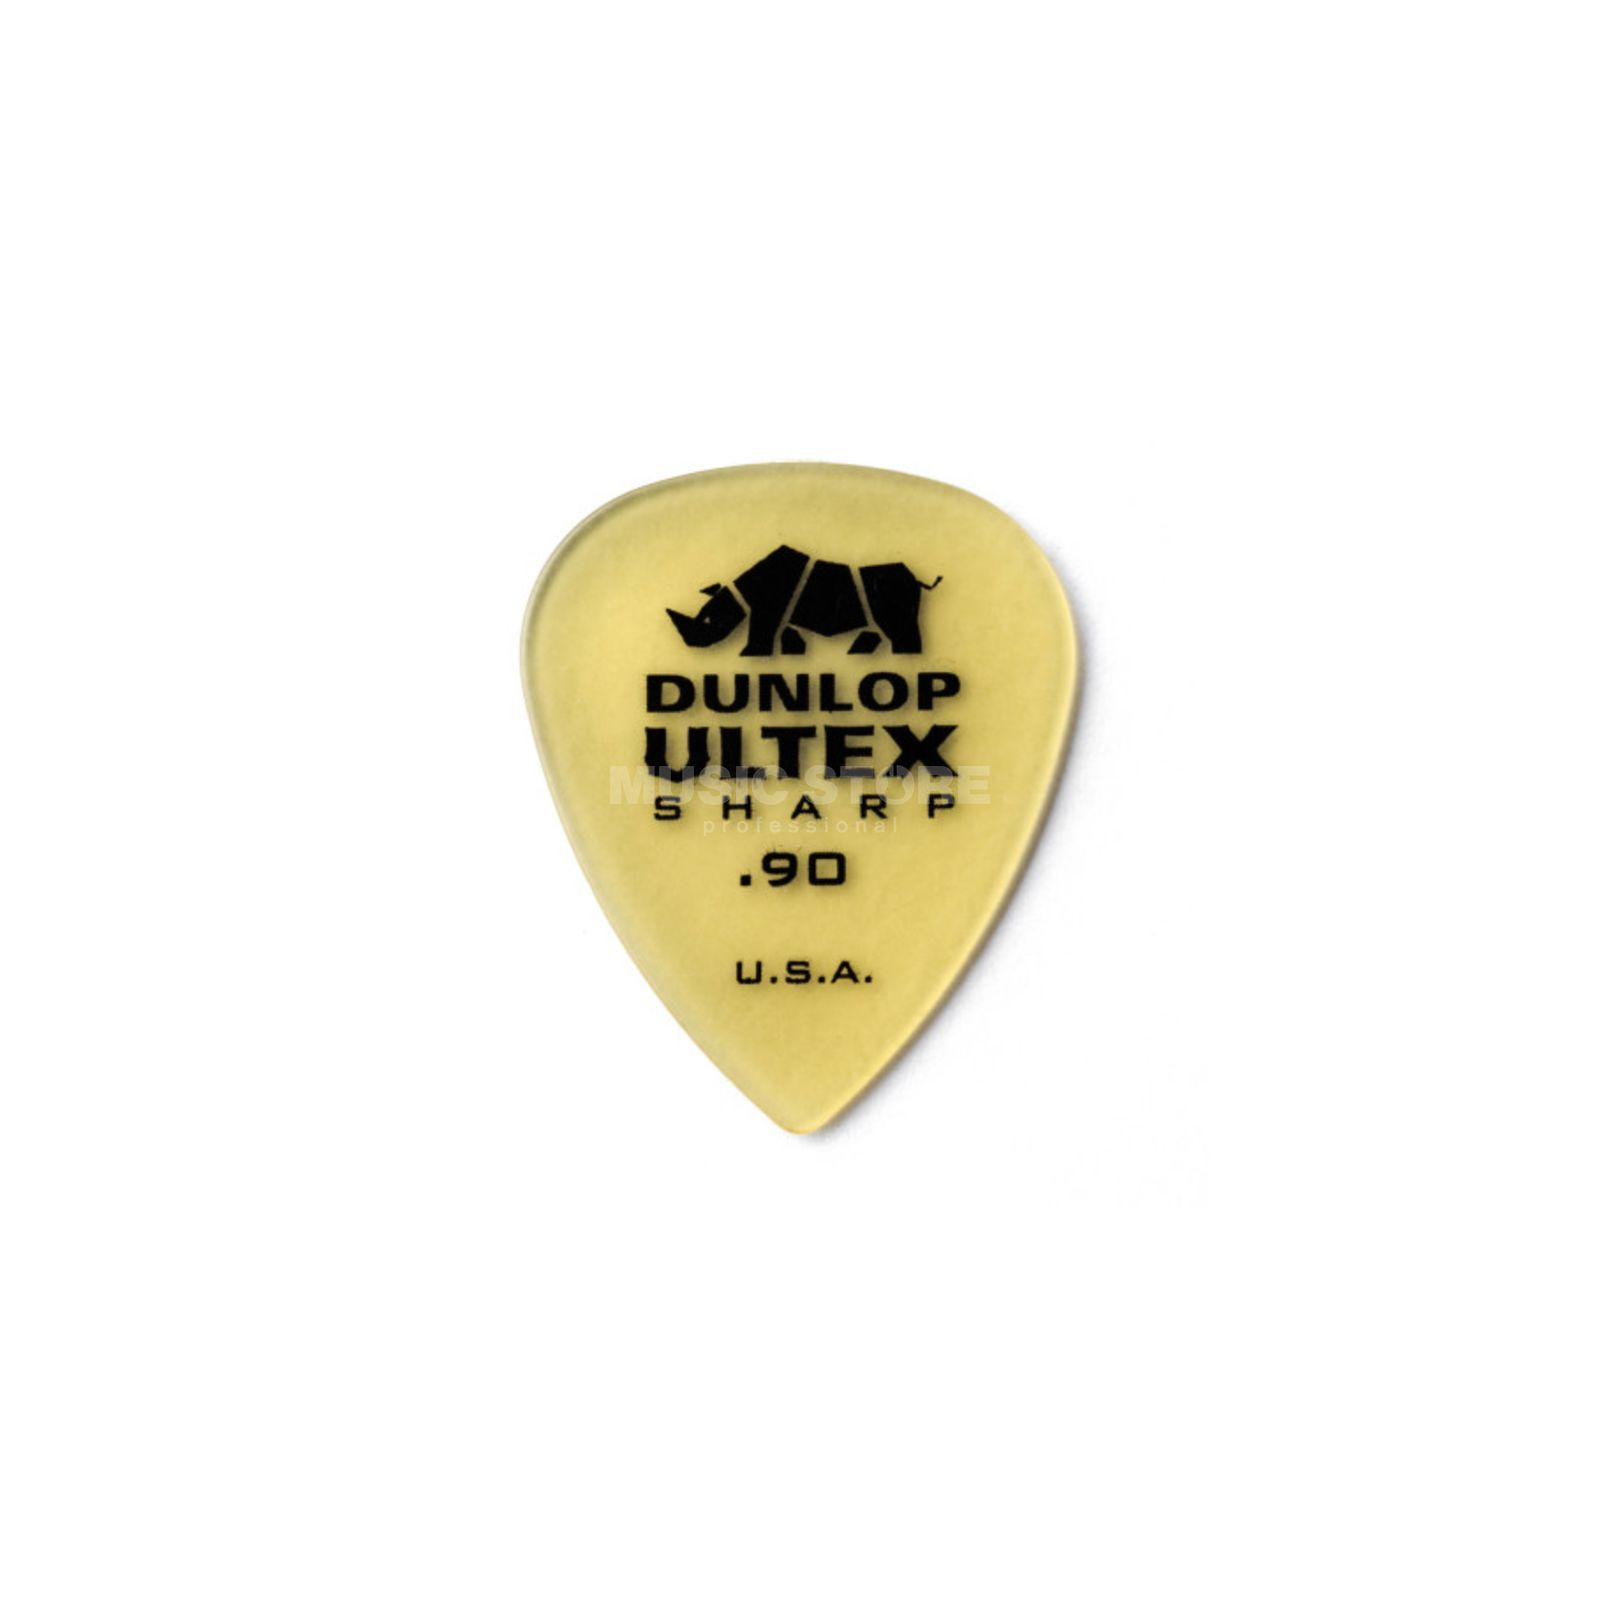 Dunlop Ultex Sharp Player's Pleks 0,90 mm, elfenbein, 6er-Set Produktbild